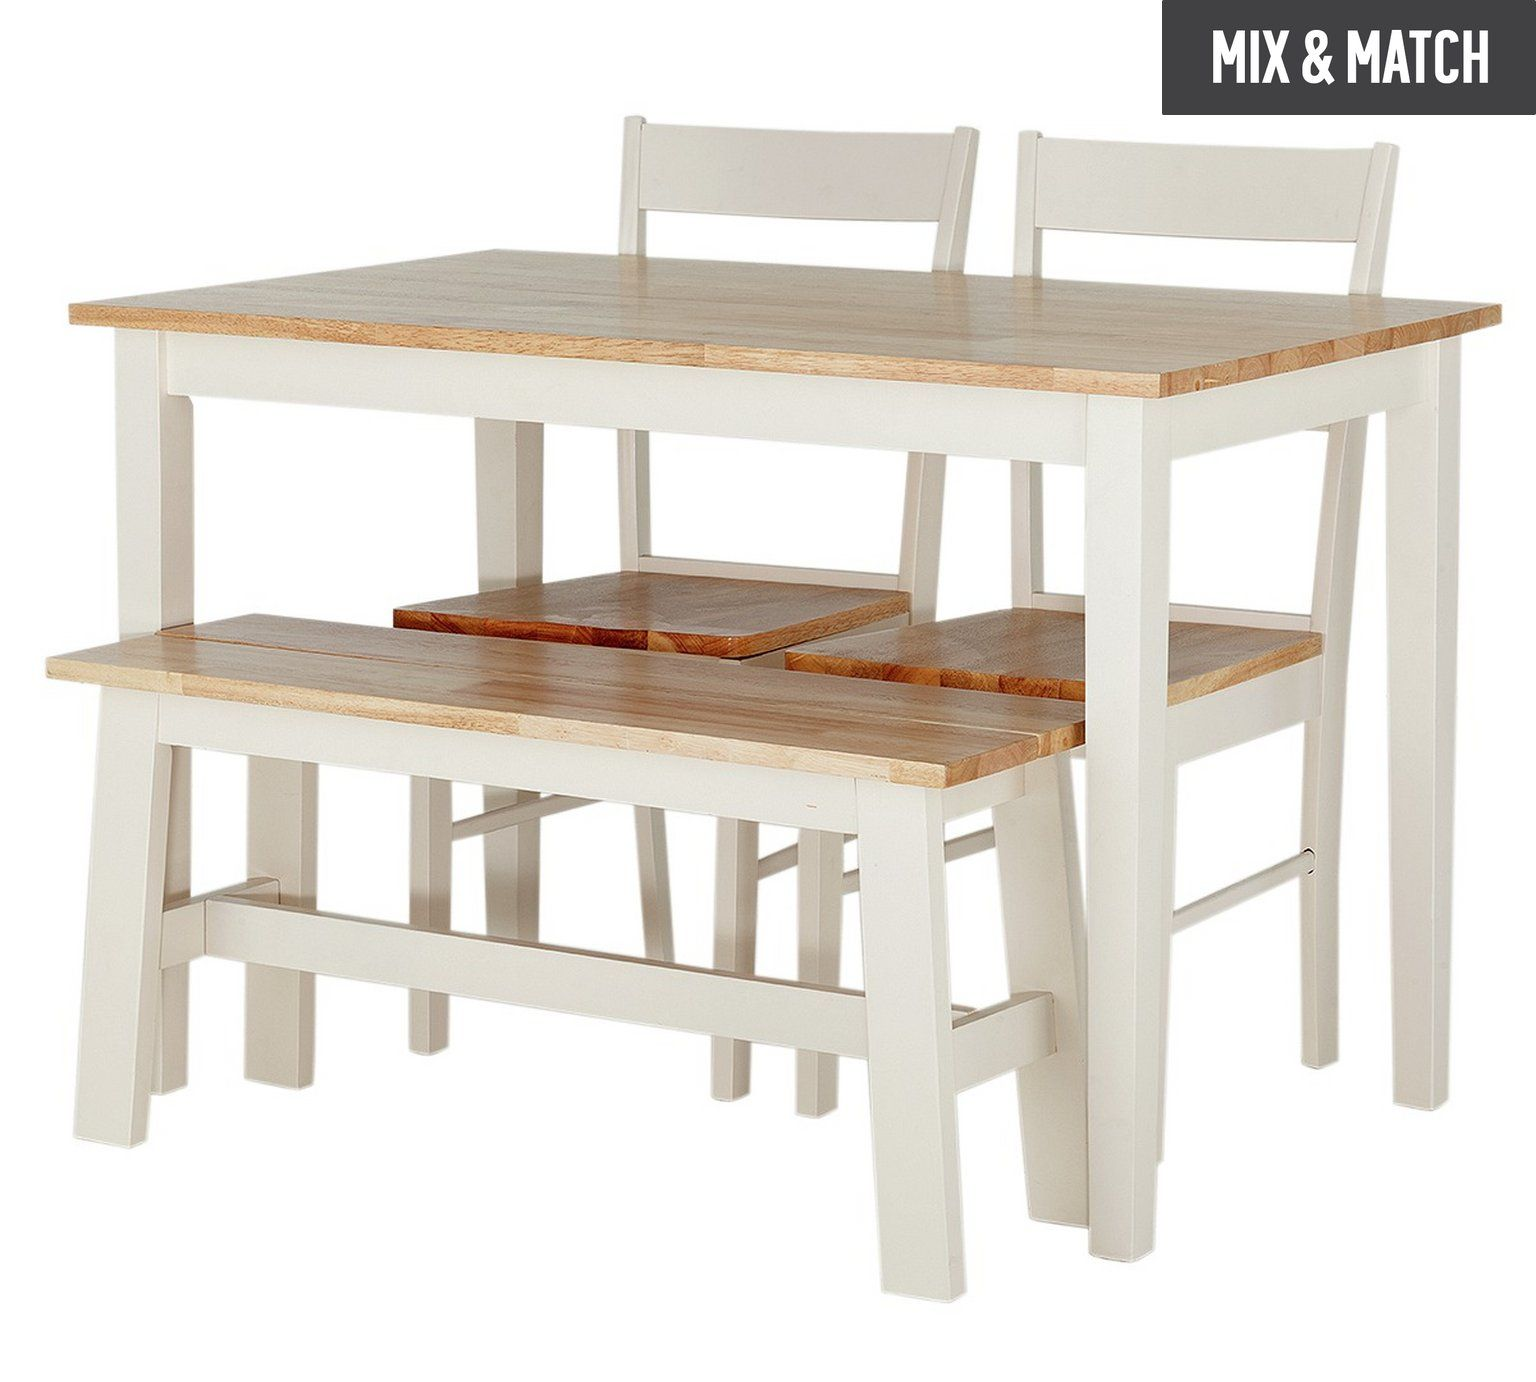 Buy Collection Chicago Solid Wood Table Bench & 2 Chairs at Argos